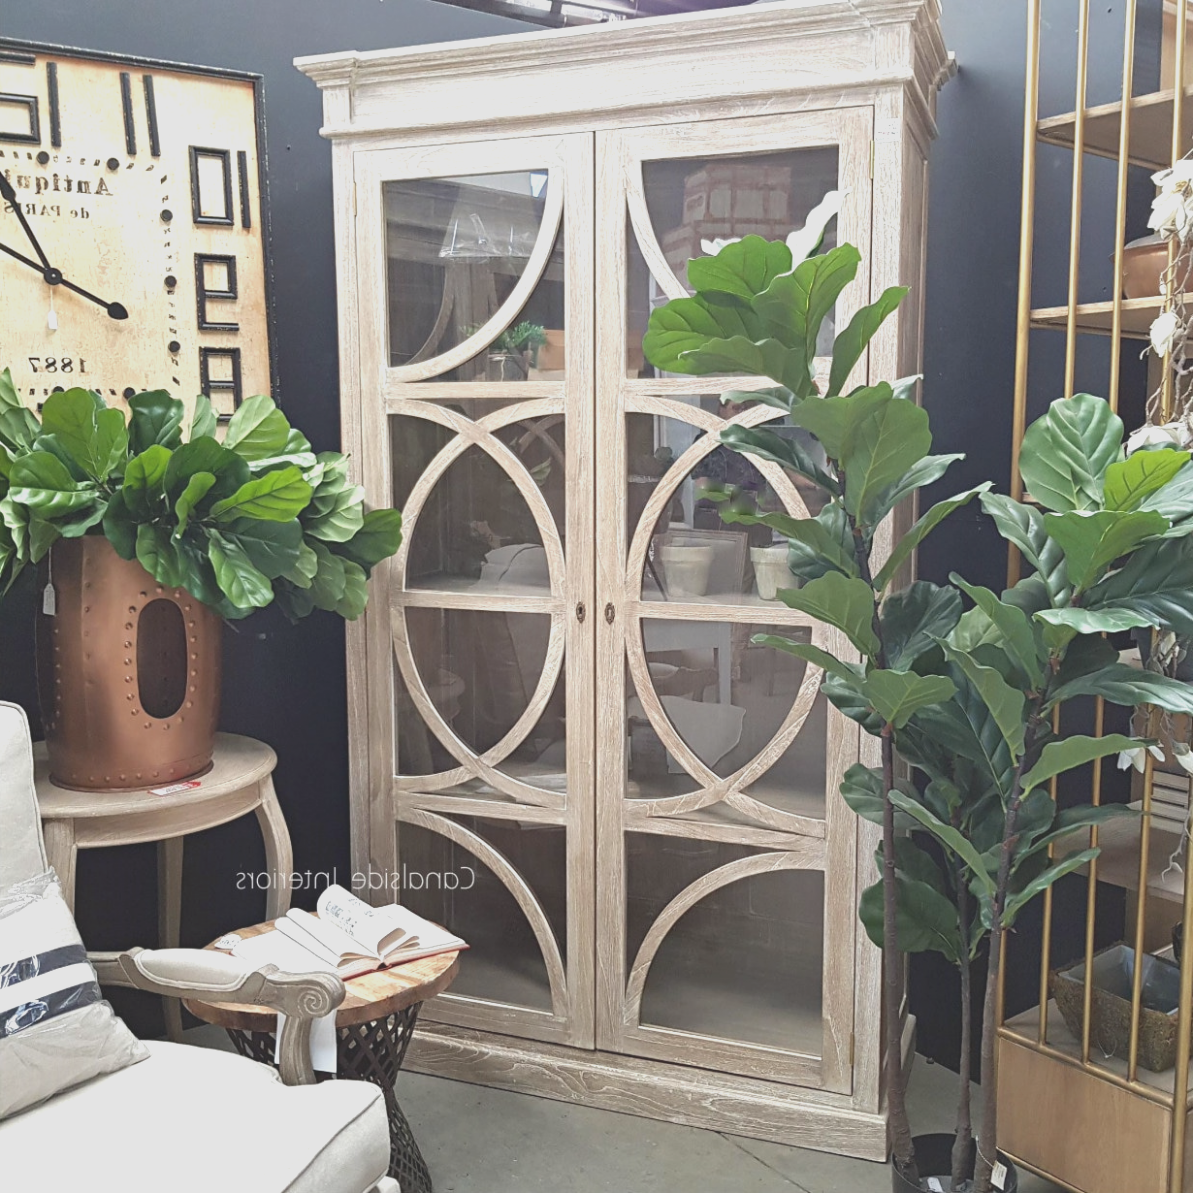 Cabinet Displays for Sale